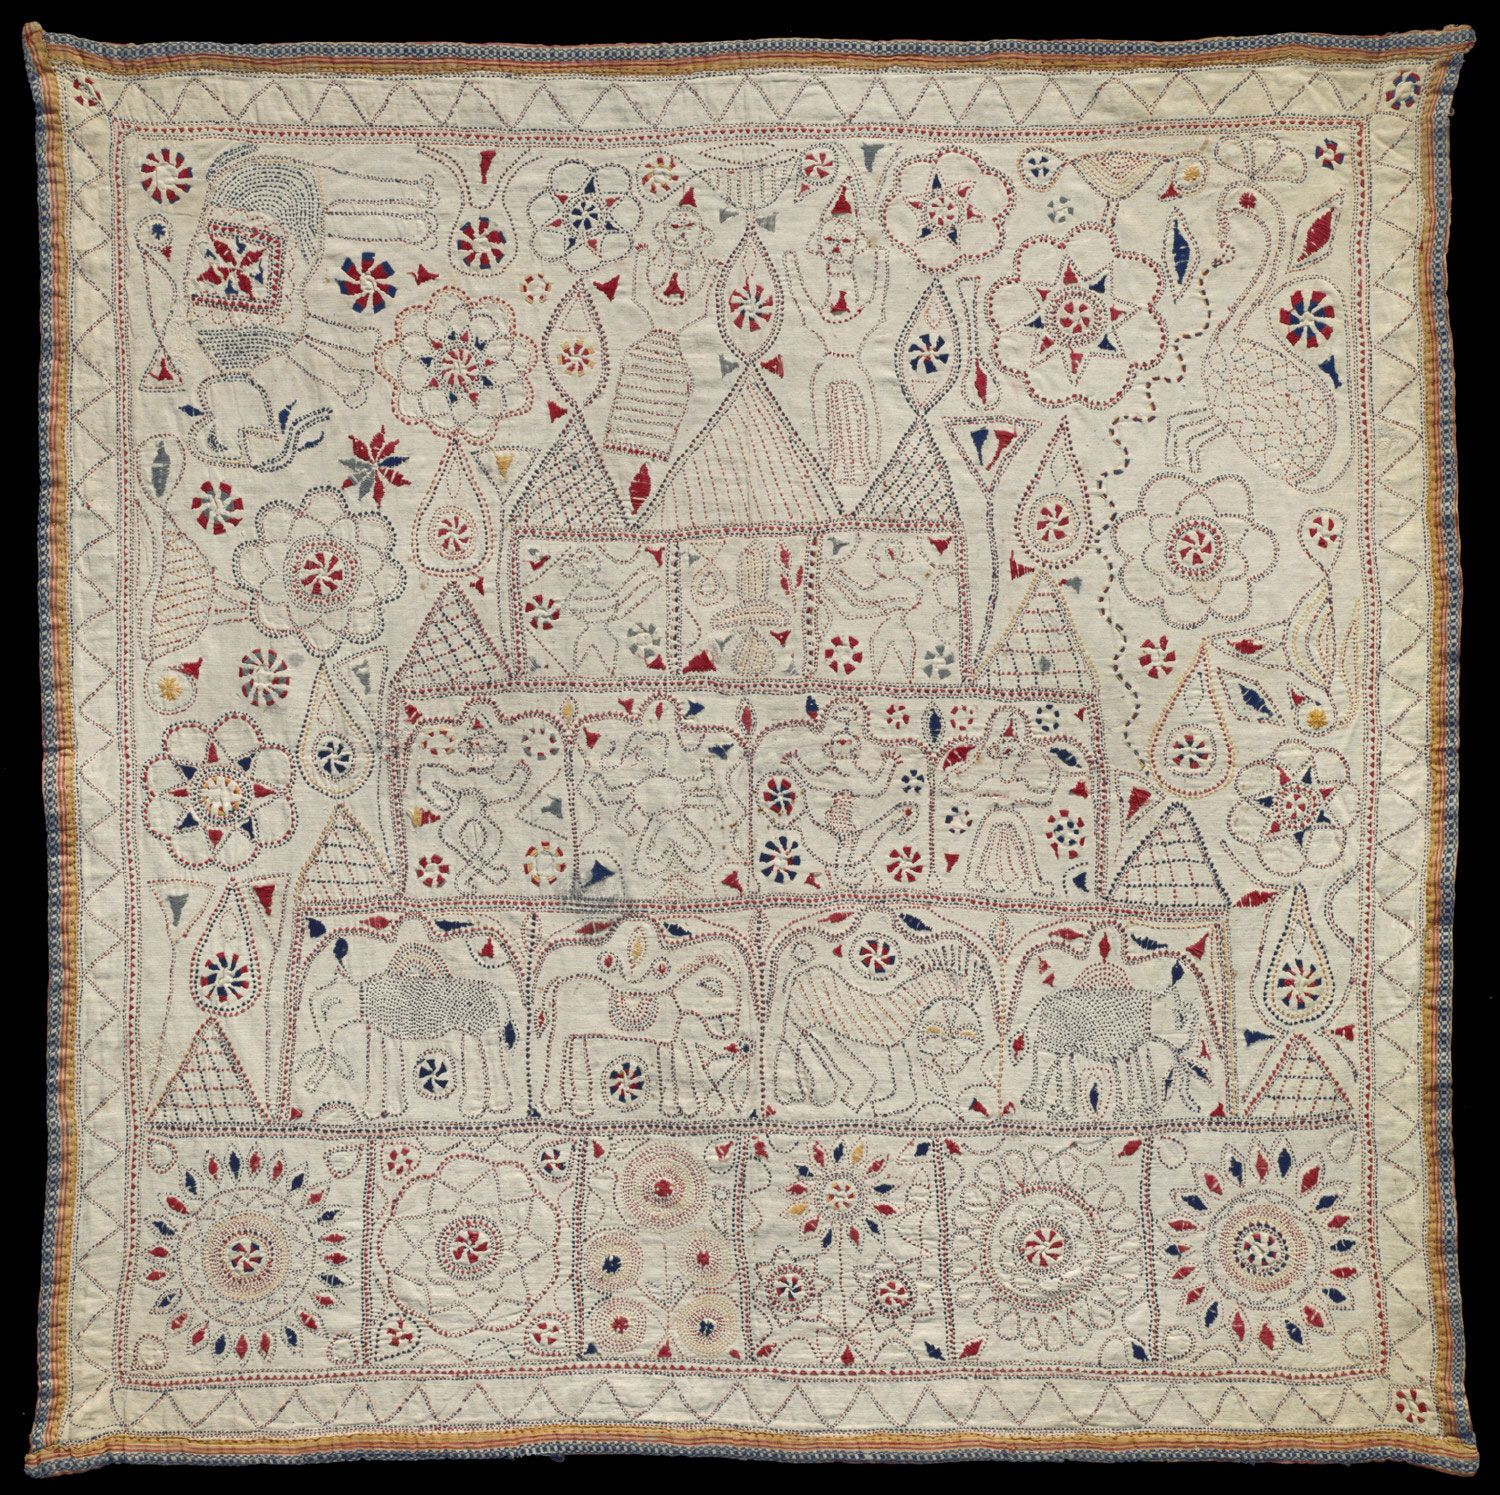 Philadelphia Museum of Art - Collections Object : Kantha ...